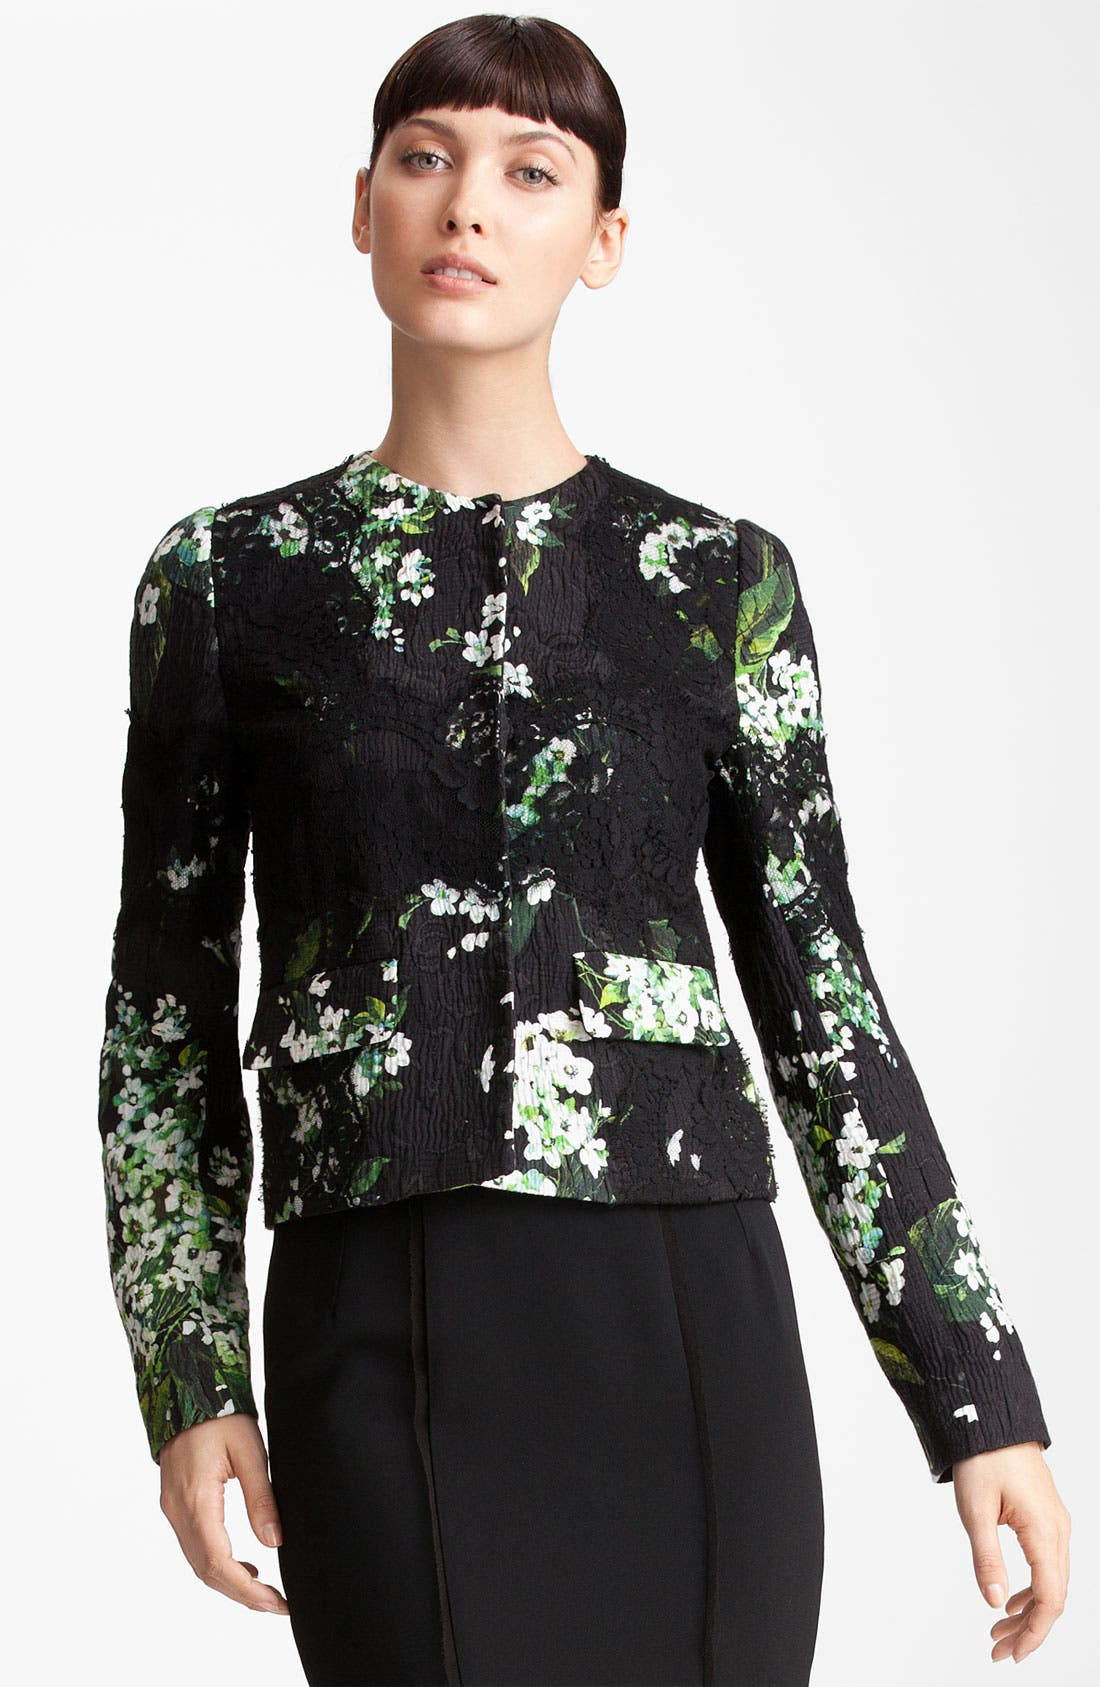 Main Image - Dolce&Gabbana Lily Print & Lace Detail Brocade Jacket